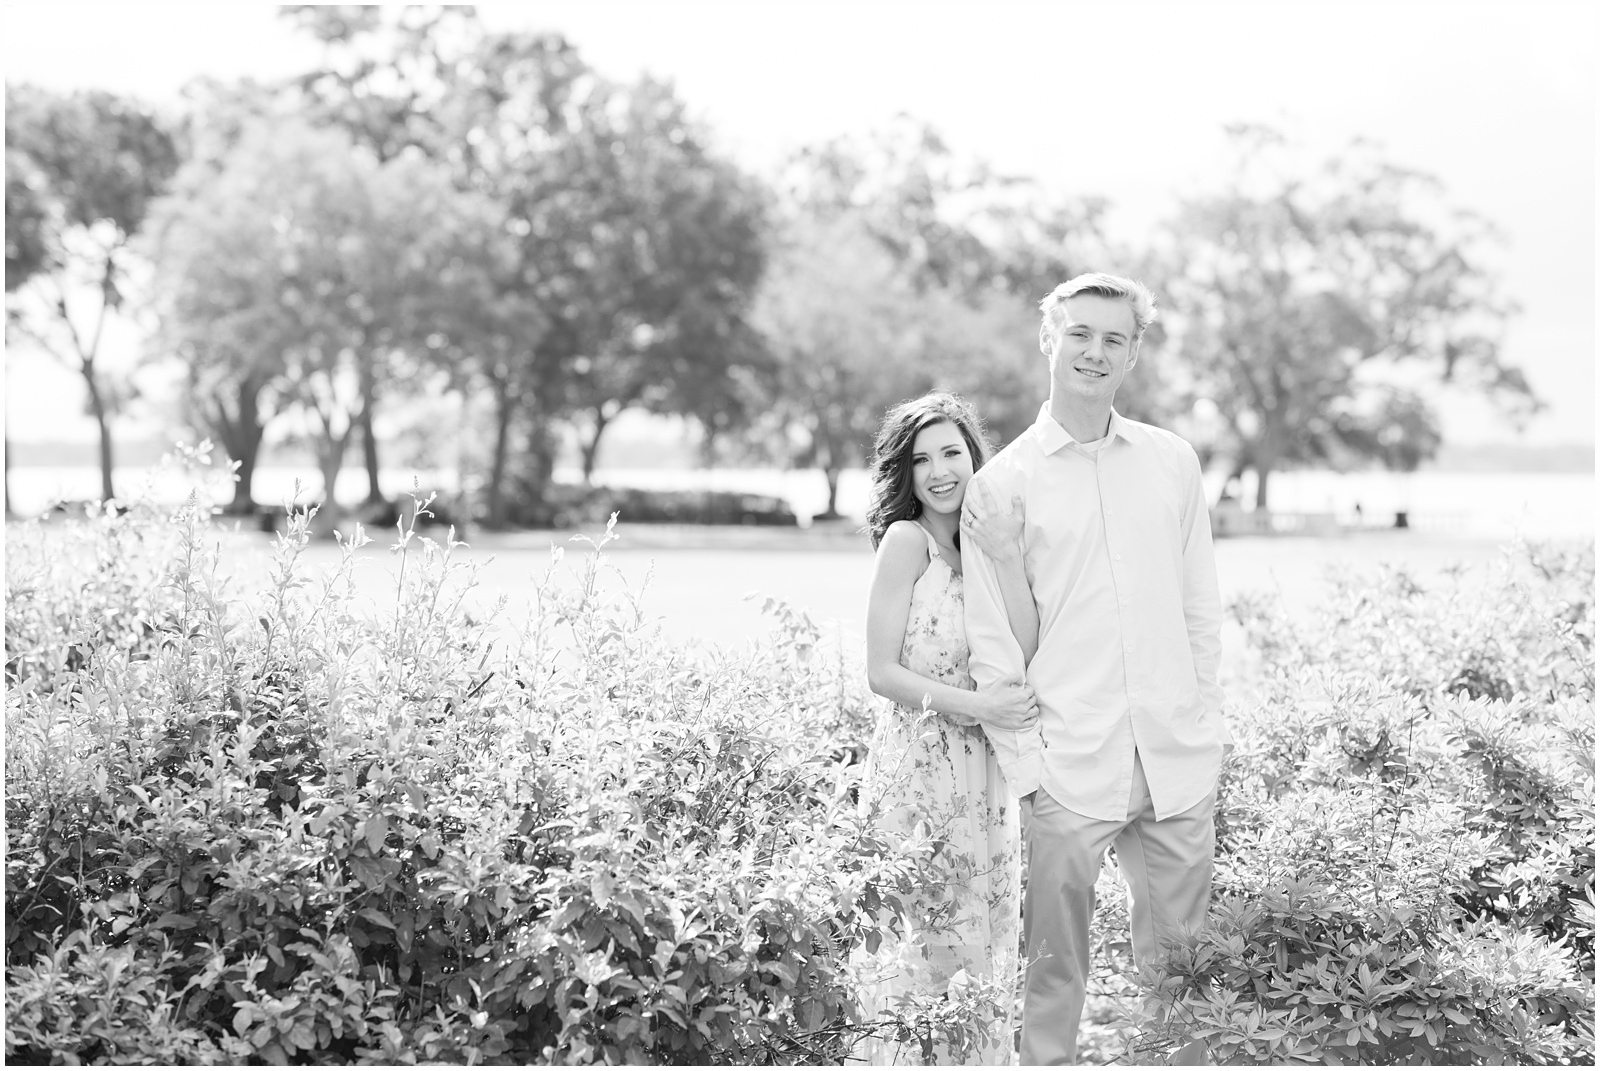 Jacksonville_Florida_Memorial Park_Engagement_Portraits_13.jpg